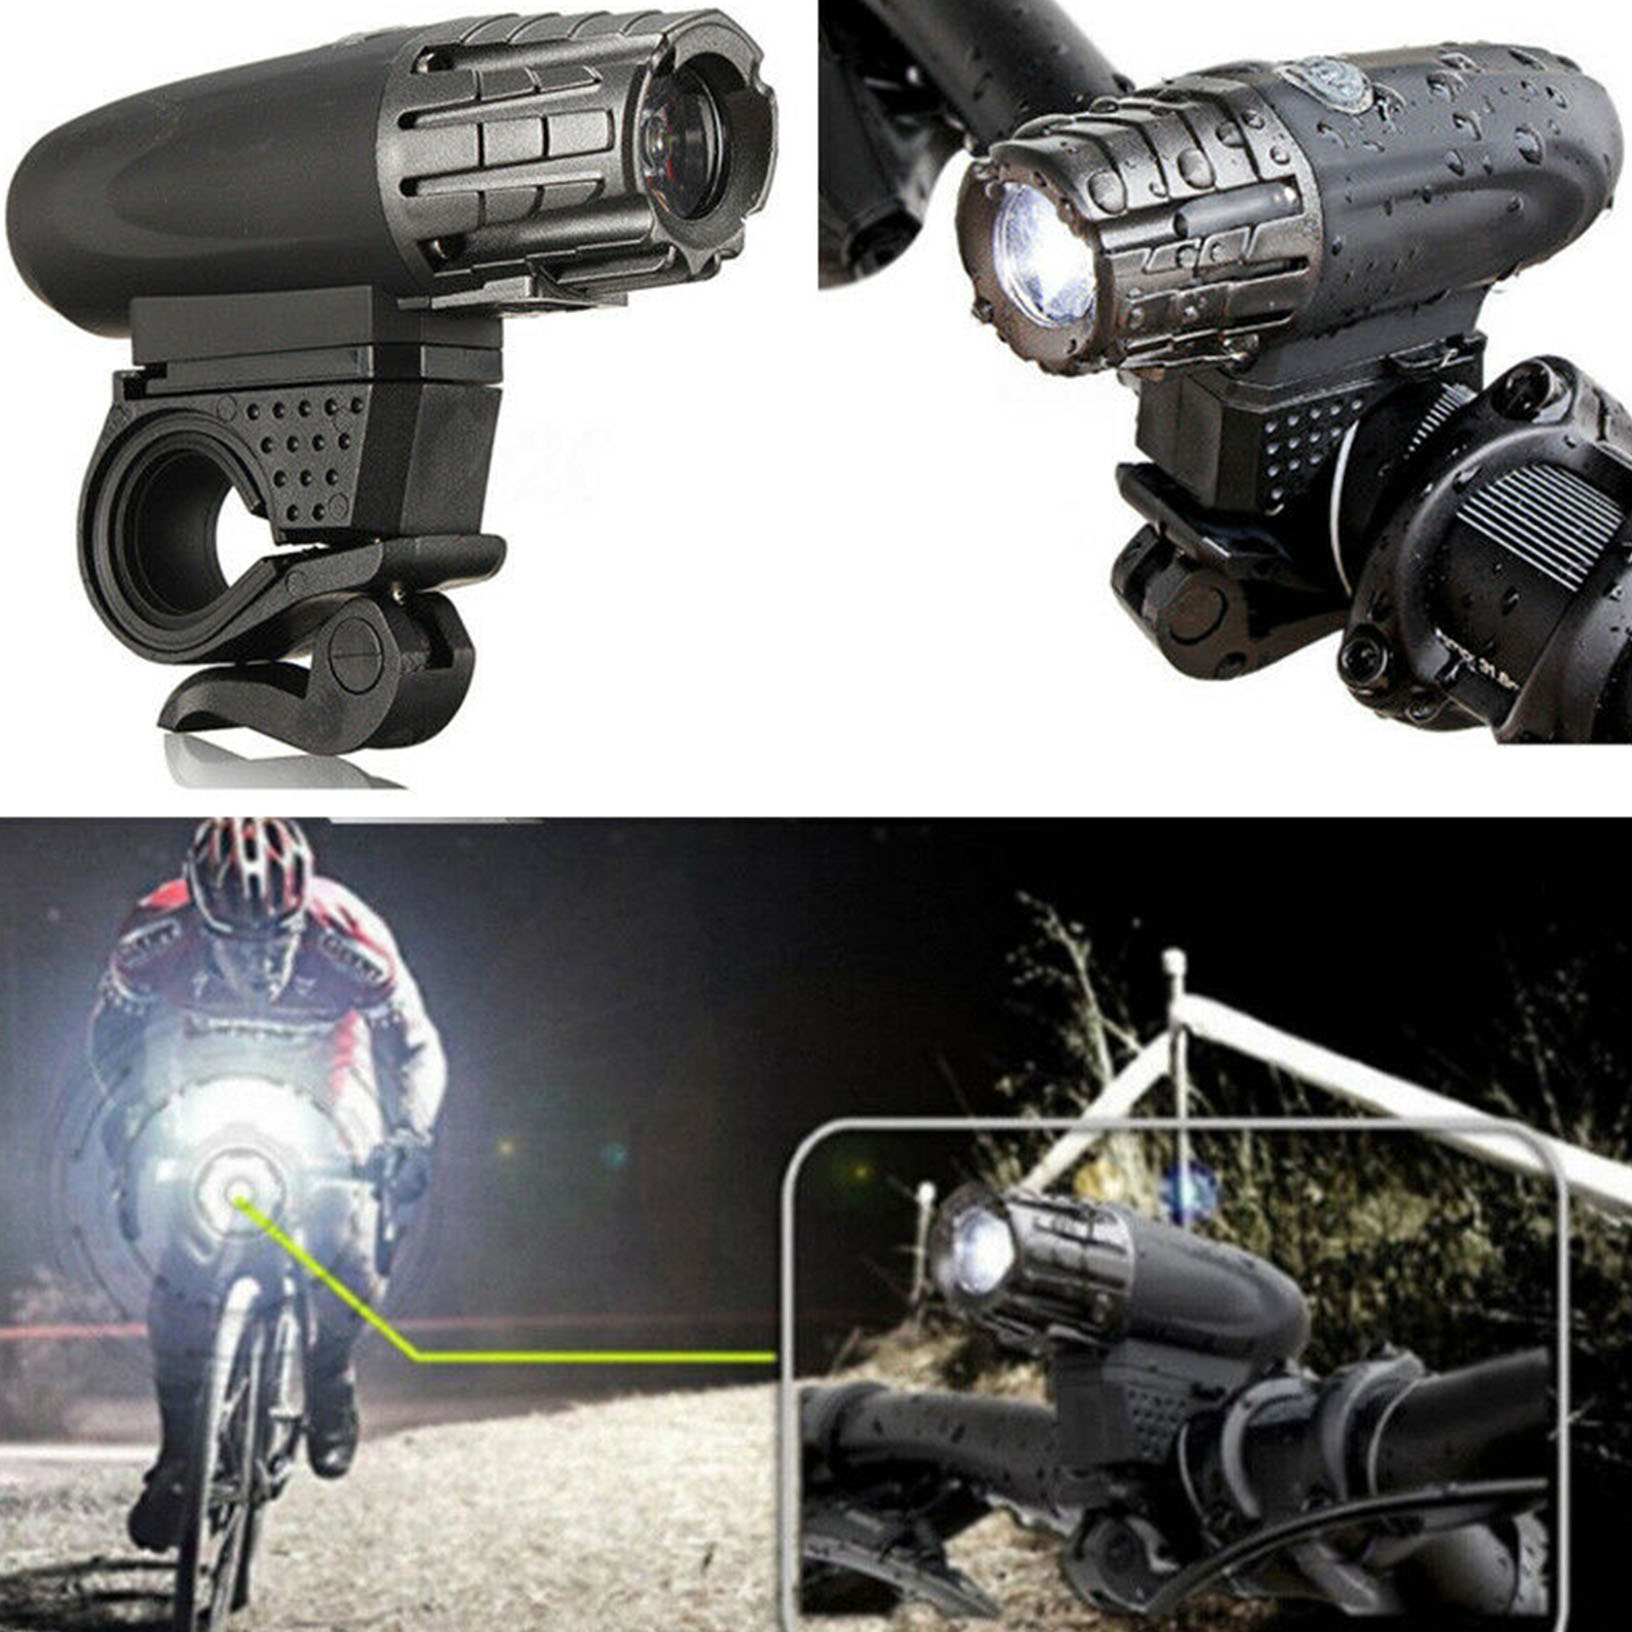 USB Rechargeable LED Bicycle Bright Bike Front Light Headlight Lamp Waterproof